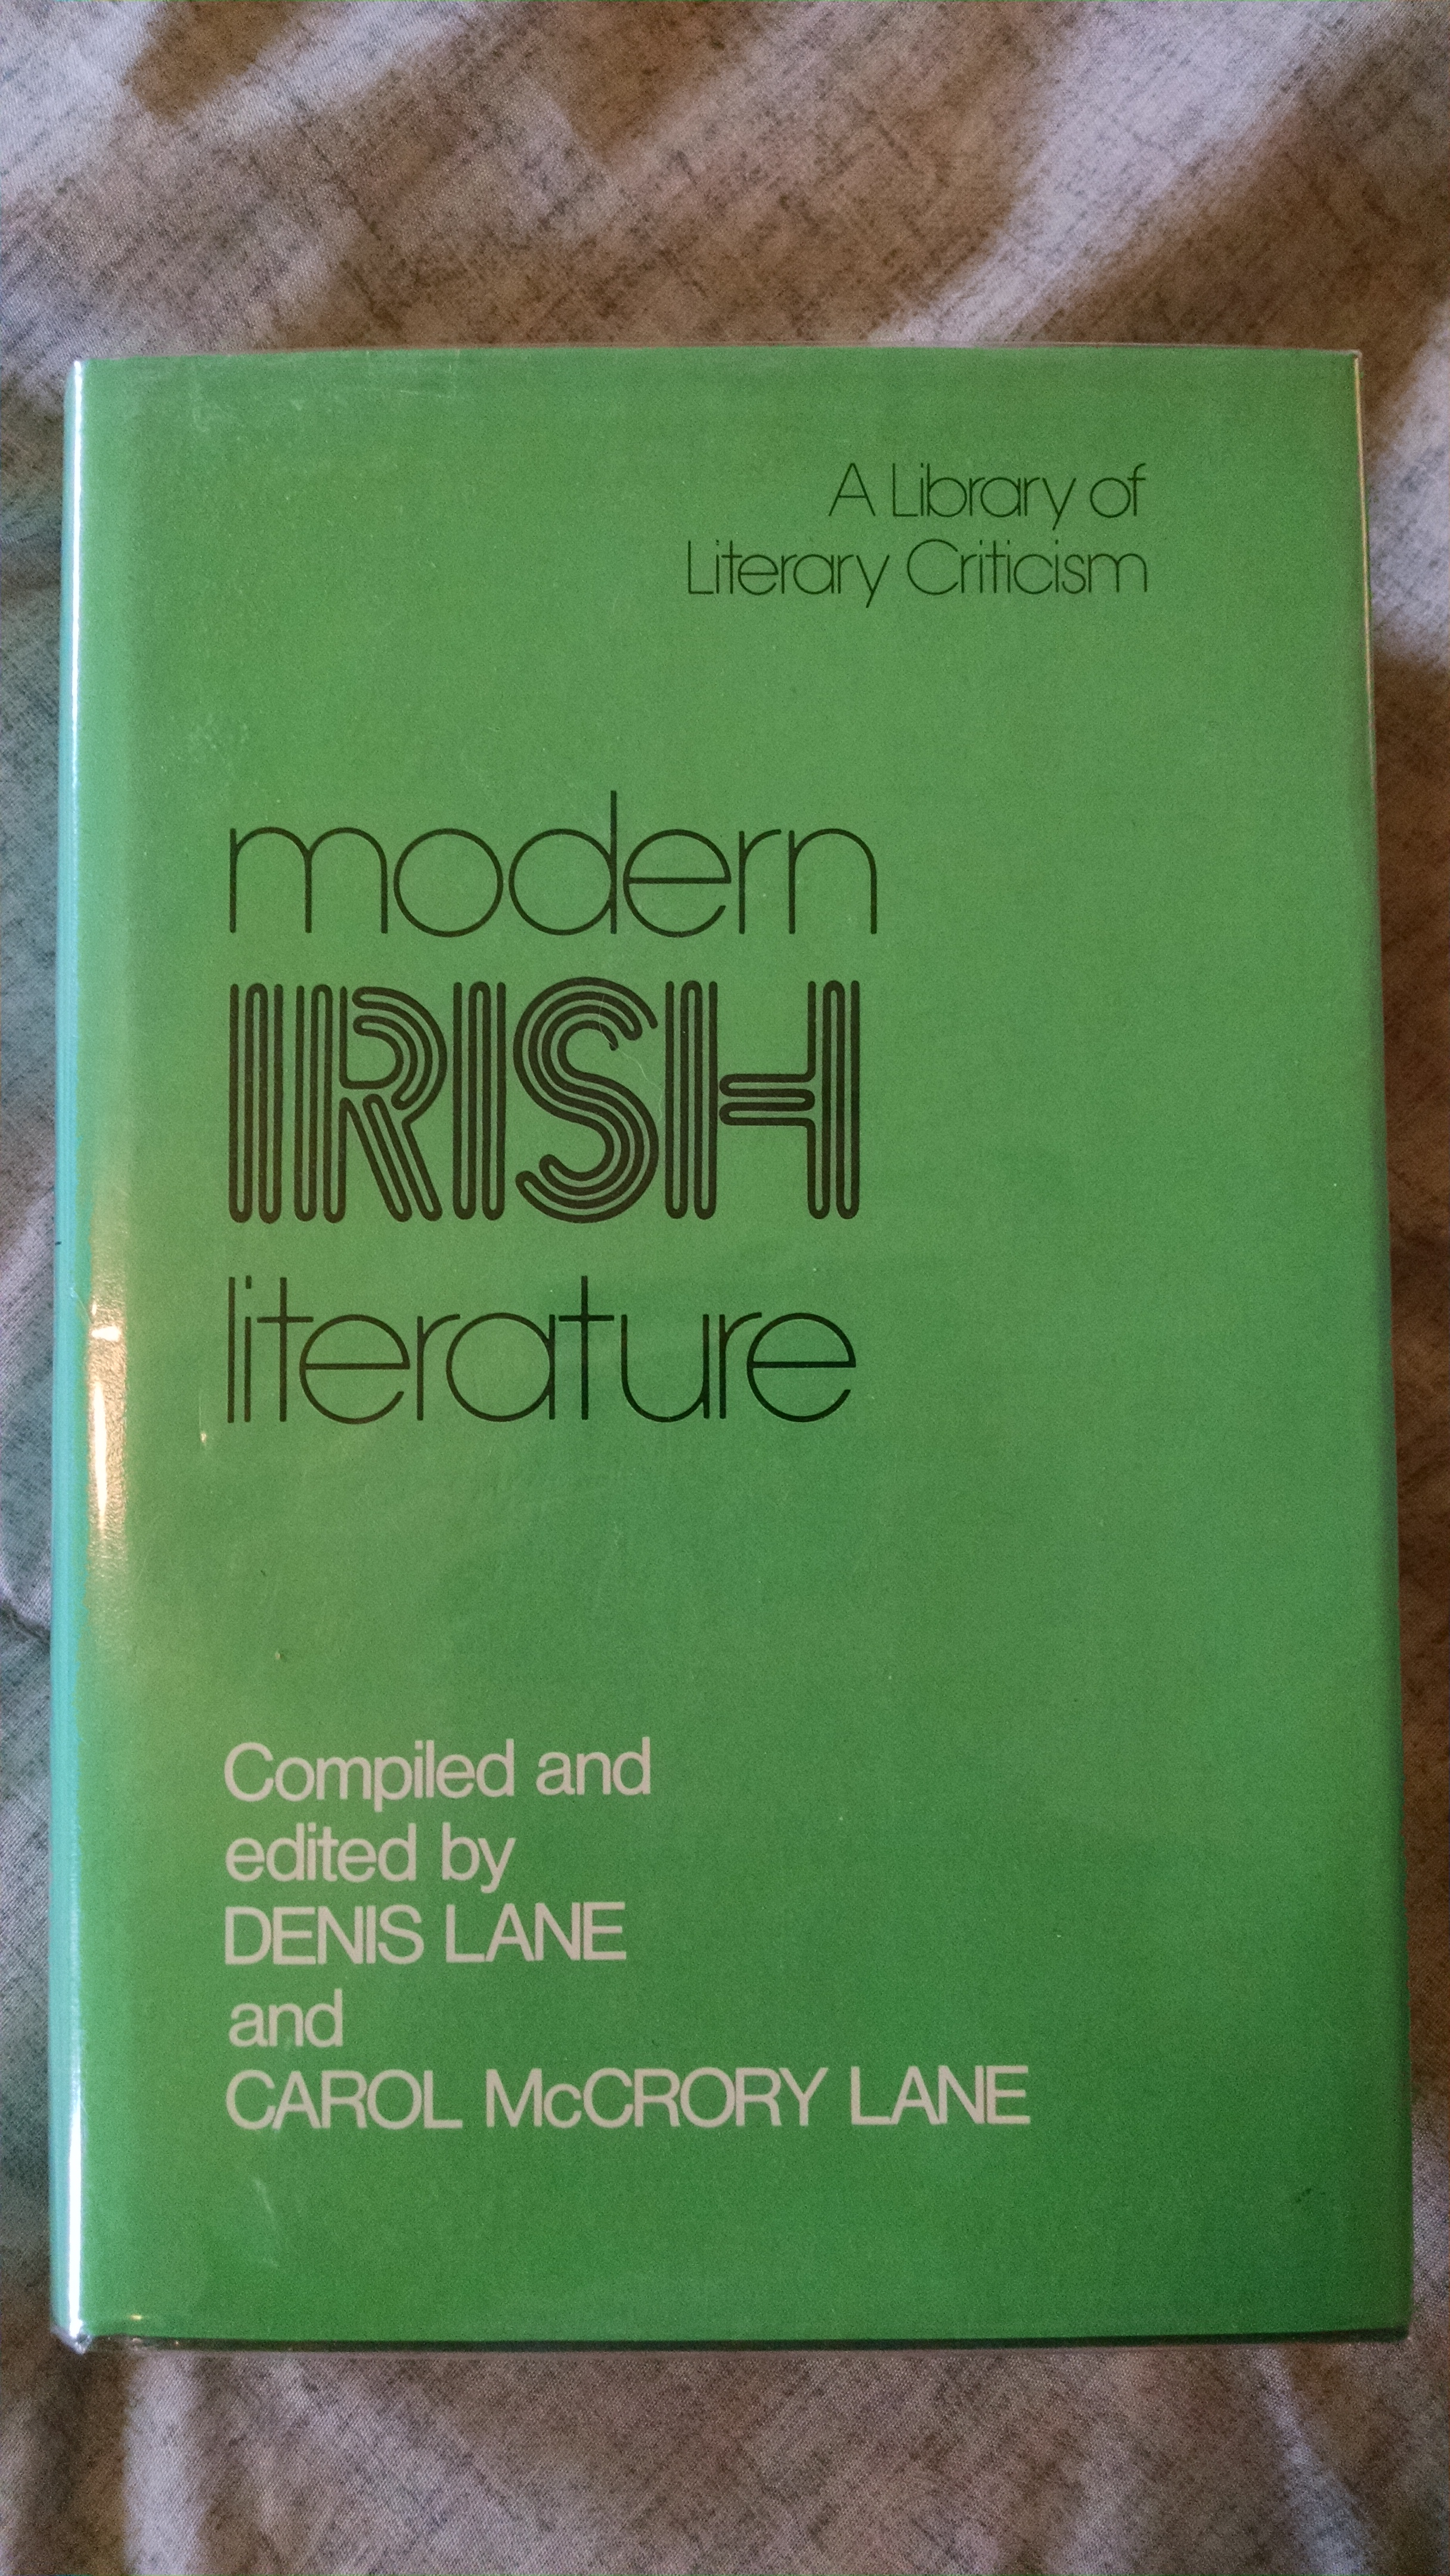 Image for MODEREN IRISH LITERATURE